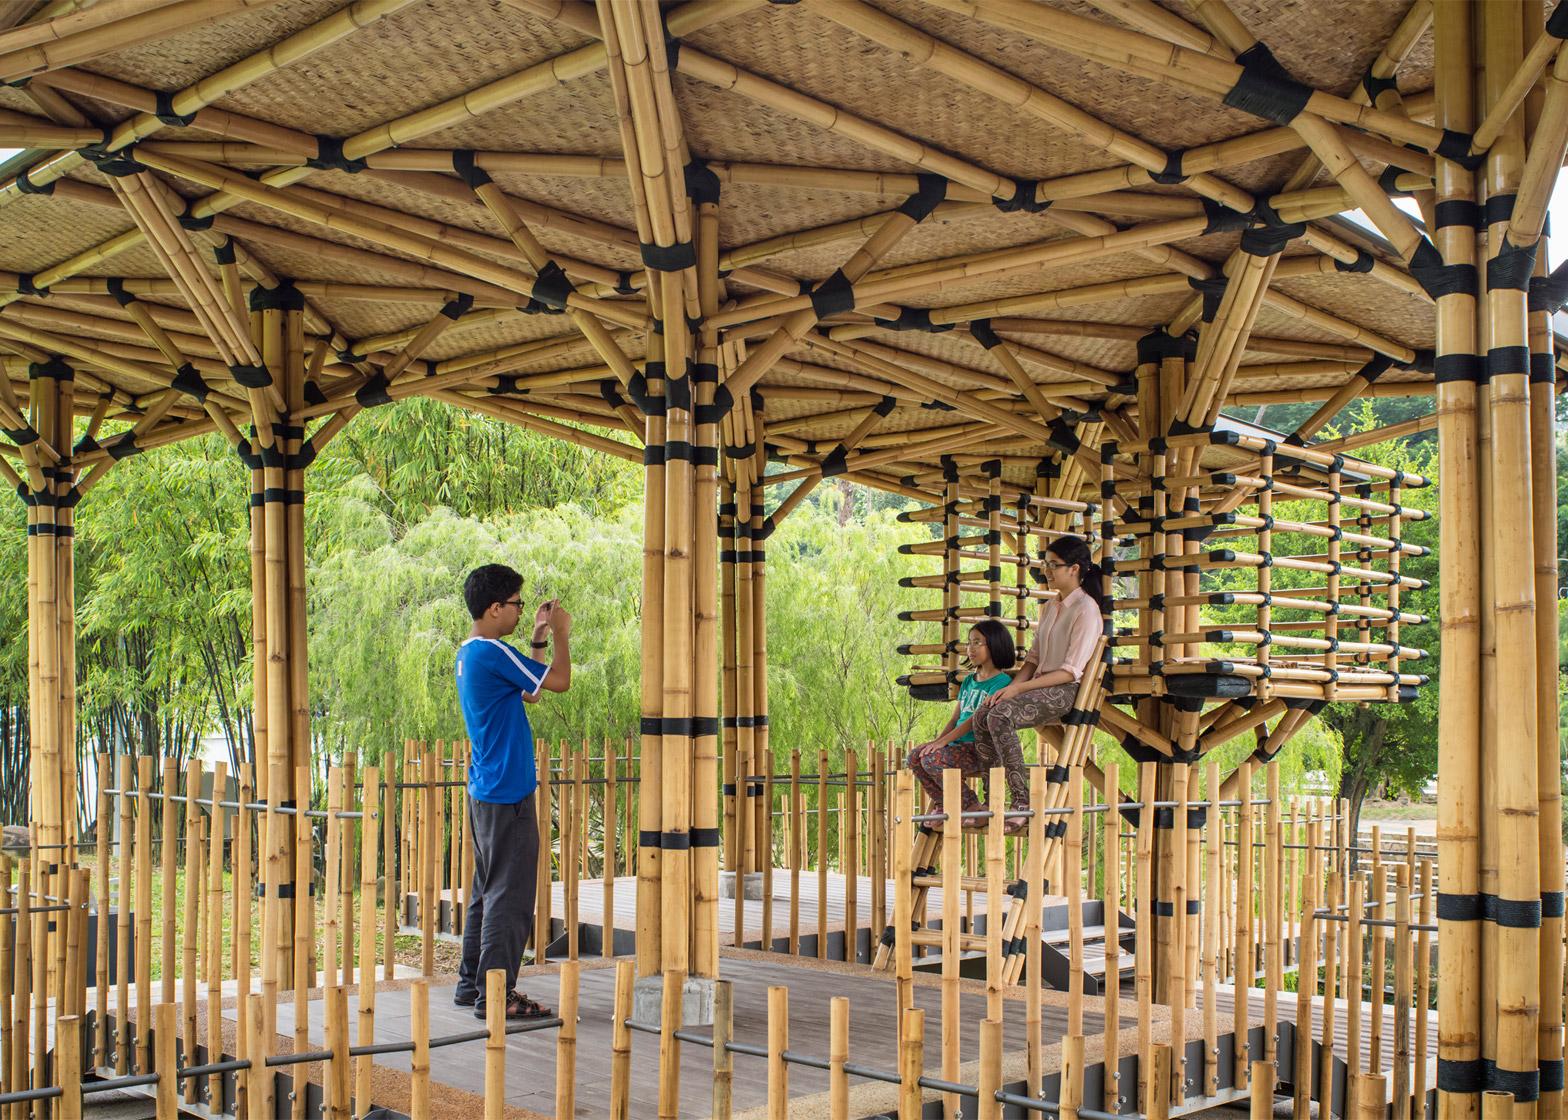 Bamboo Playhouse by Eleena Jamil Architect